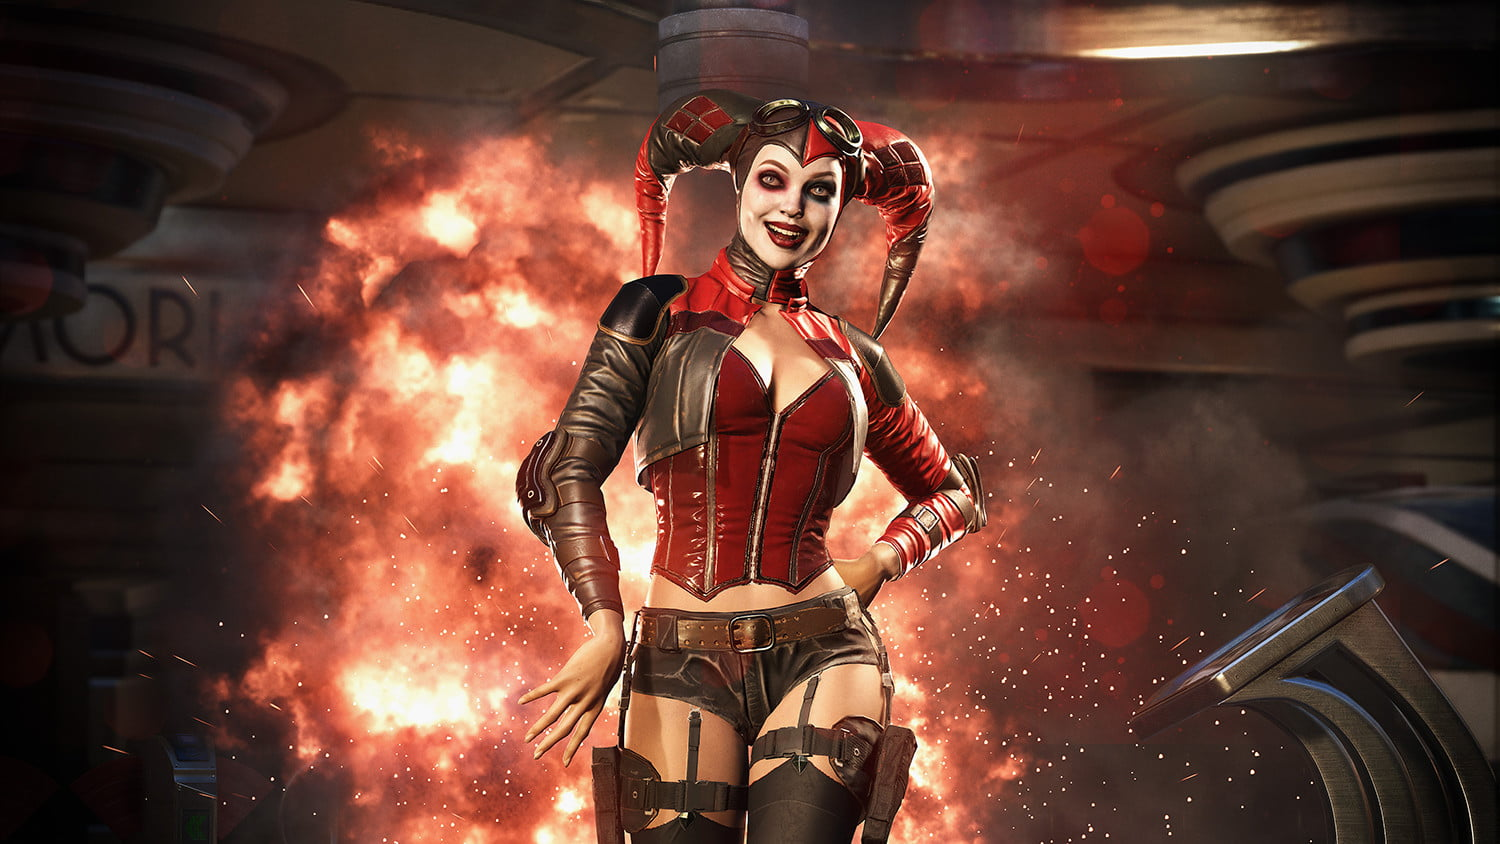 Injustice 2' Review | The perfect fighting game for solo